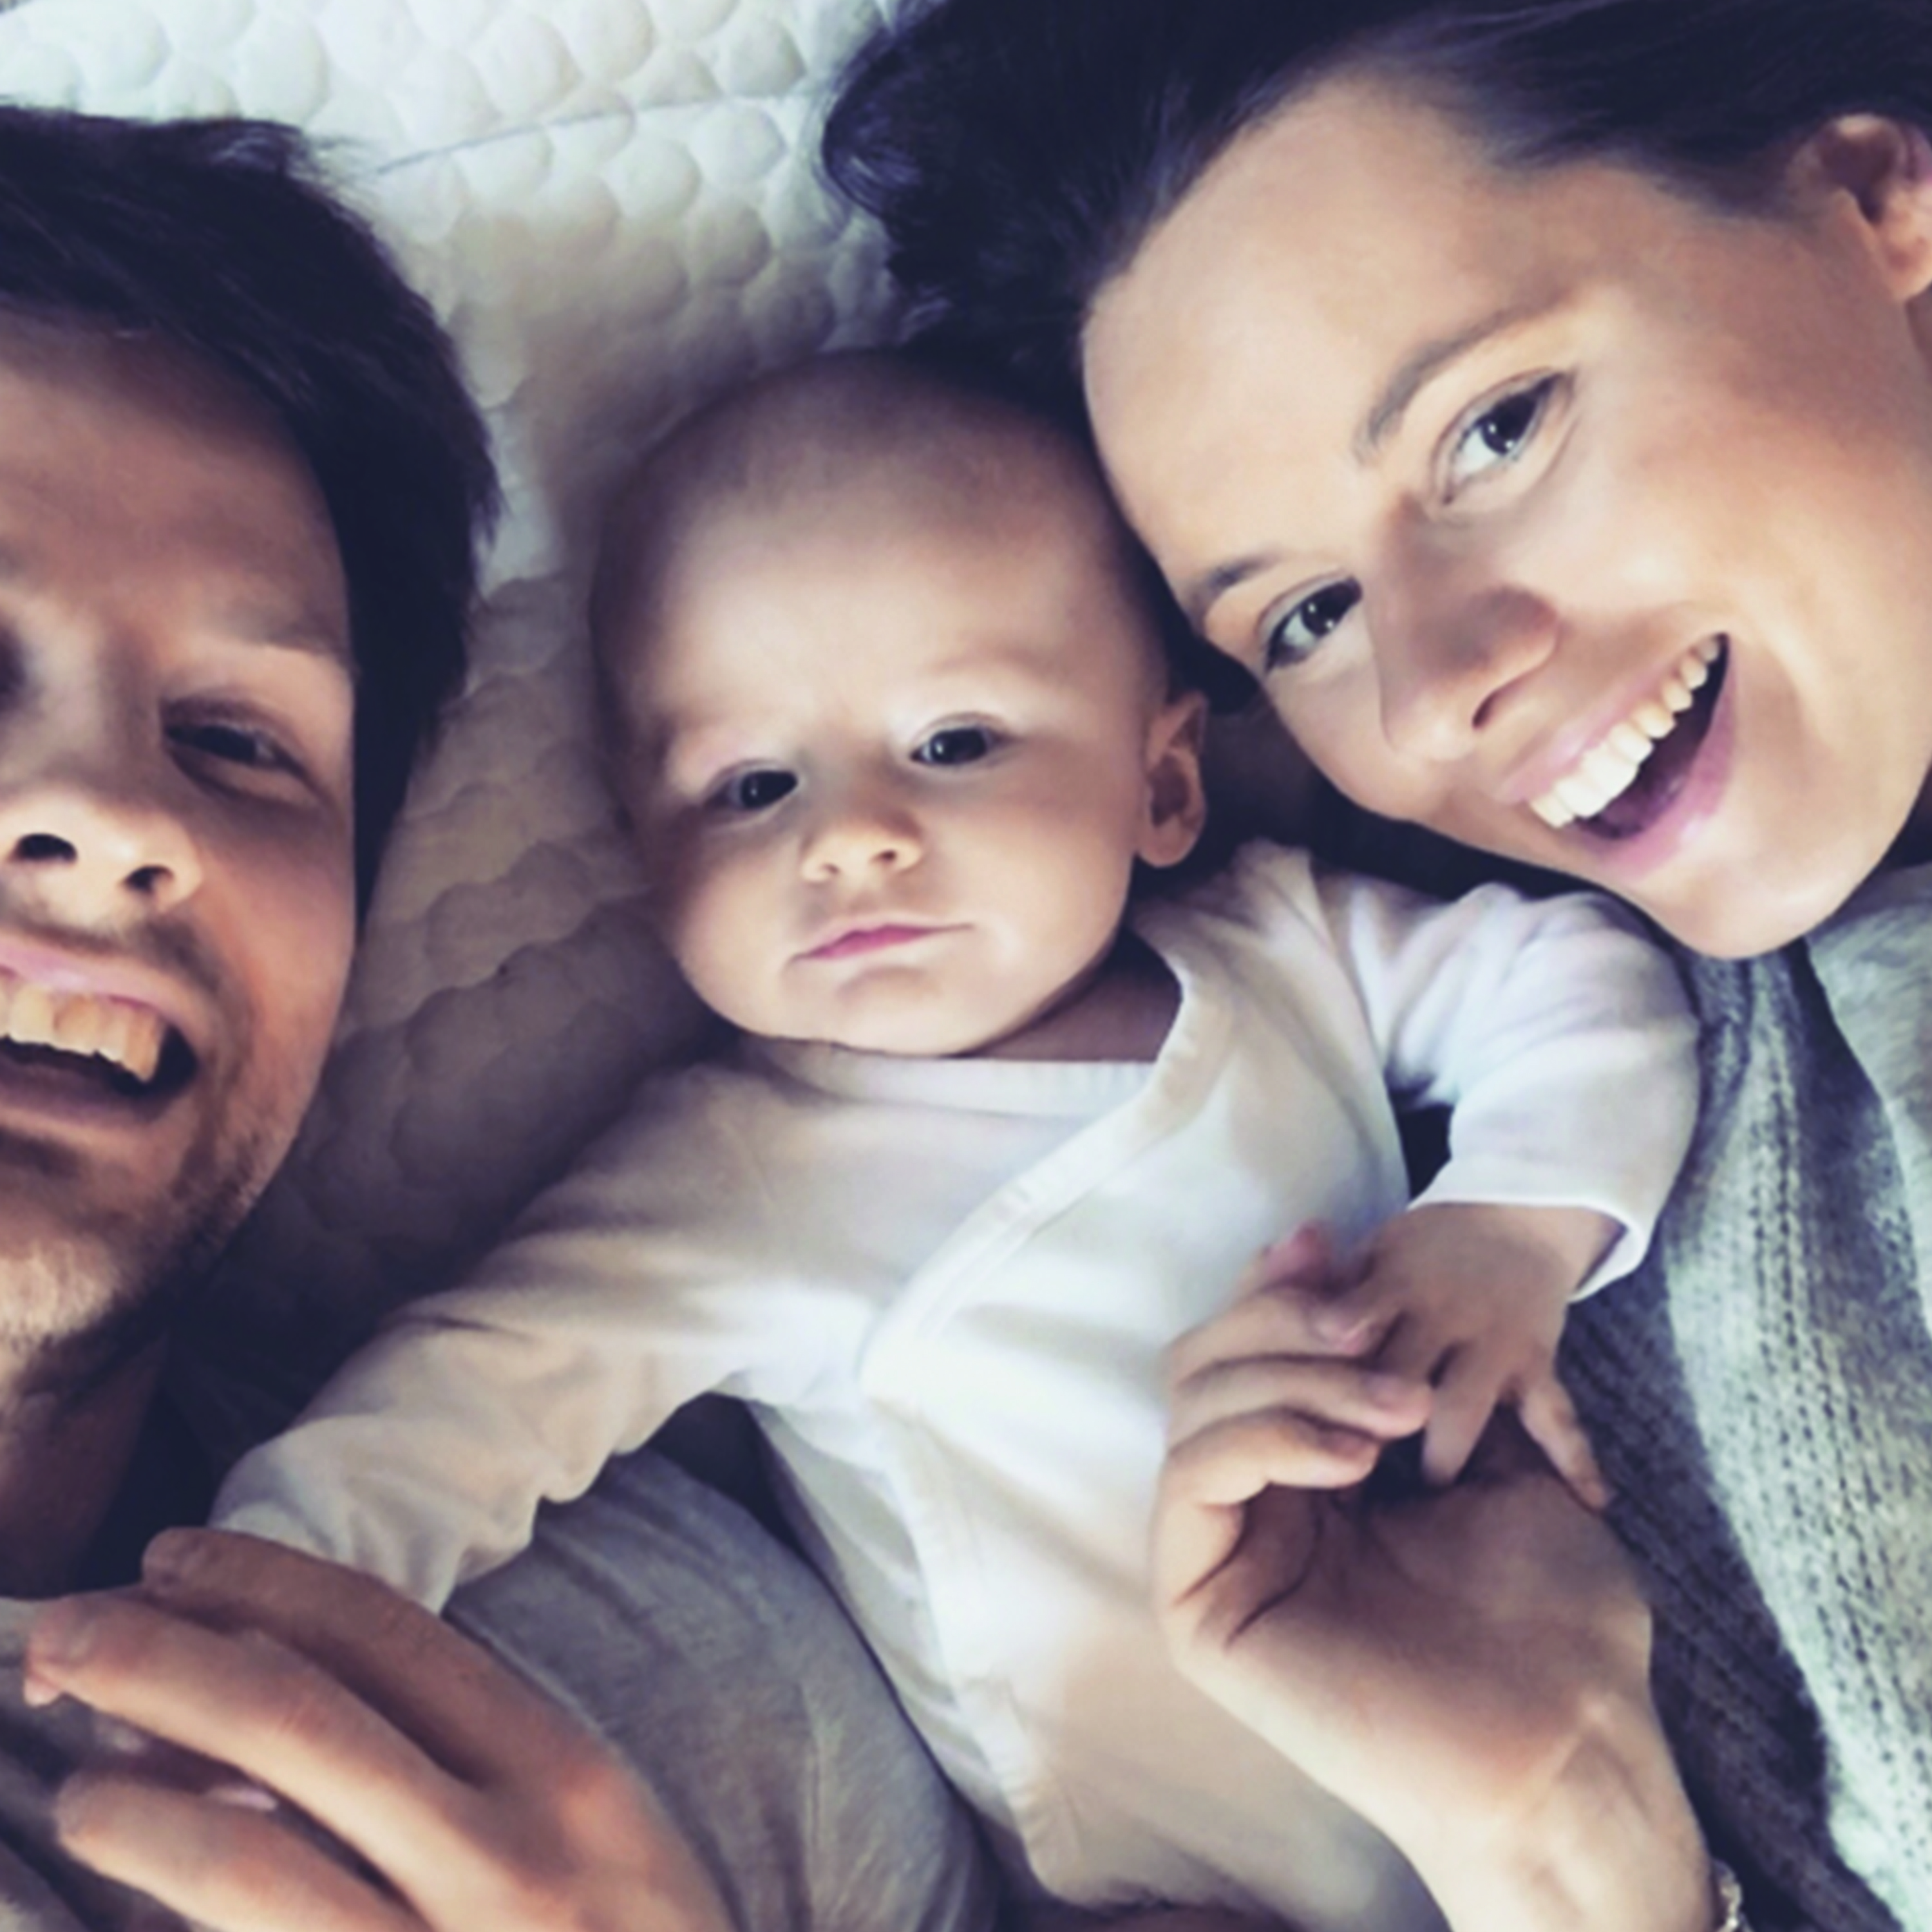 We talk to Katie about being a Mum!